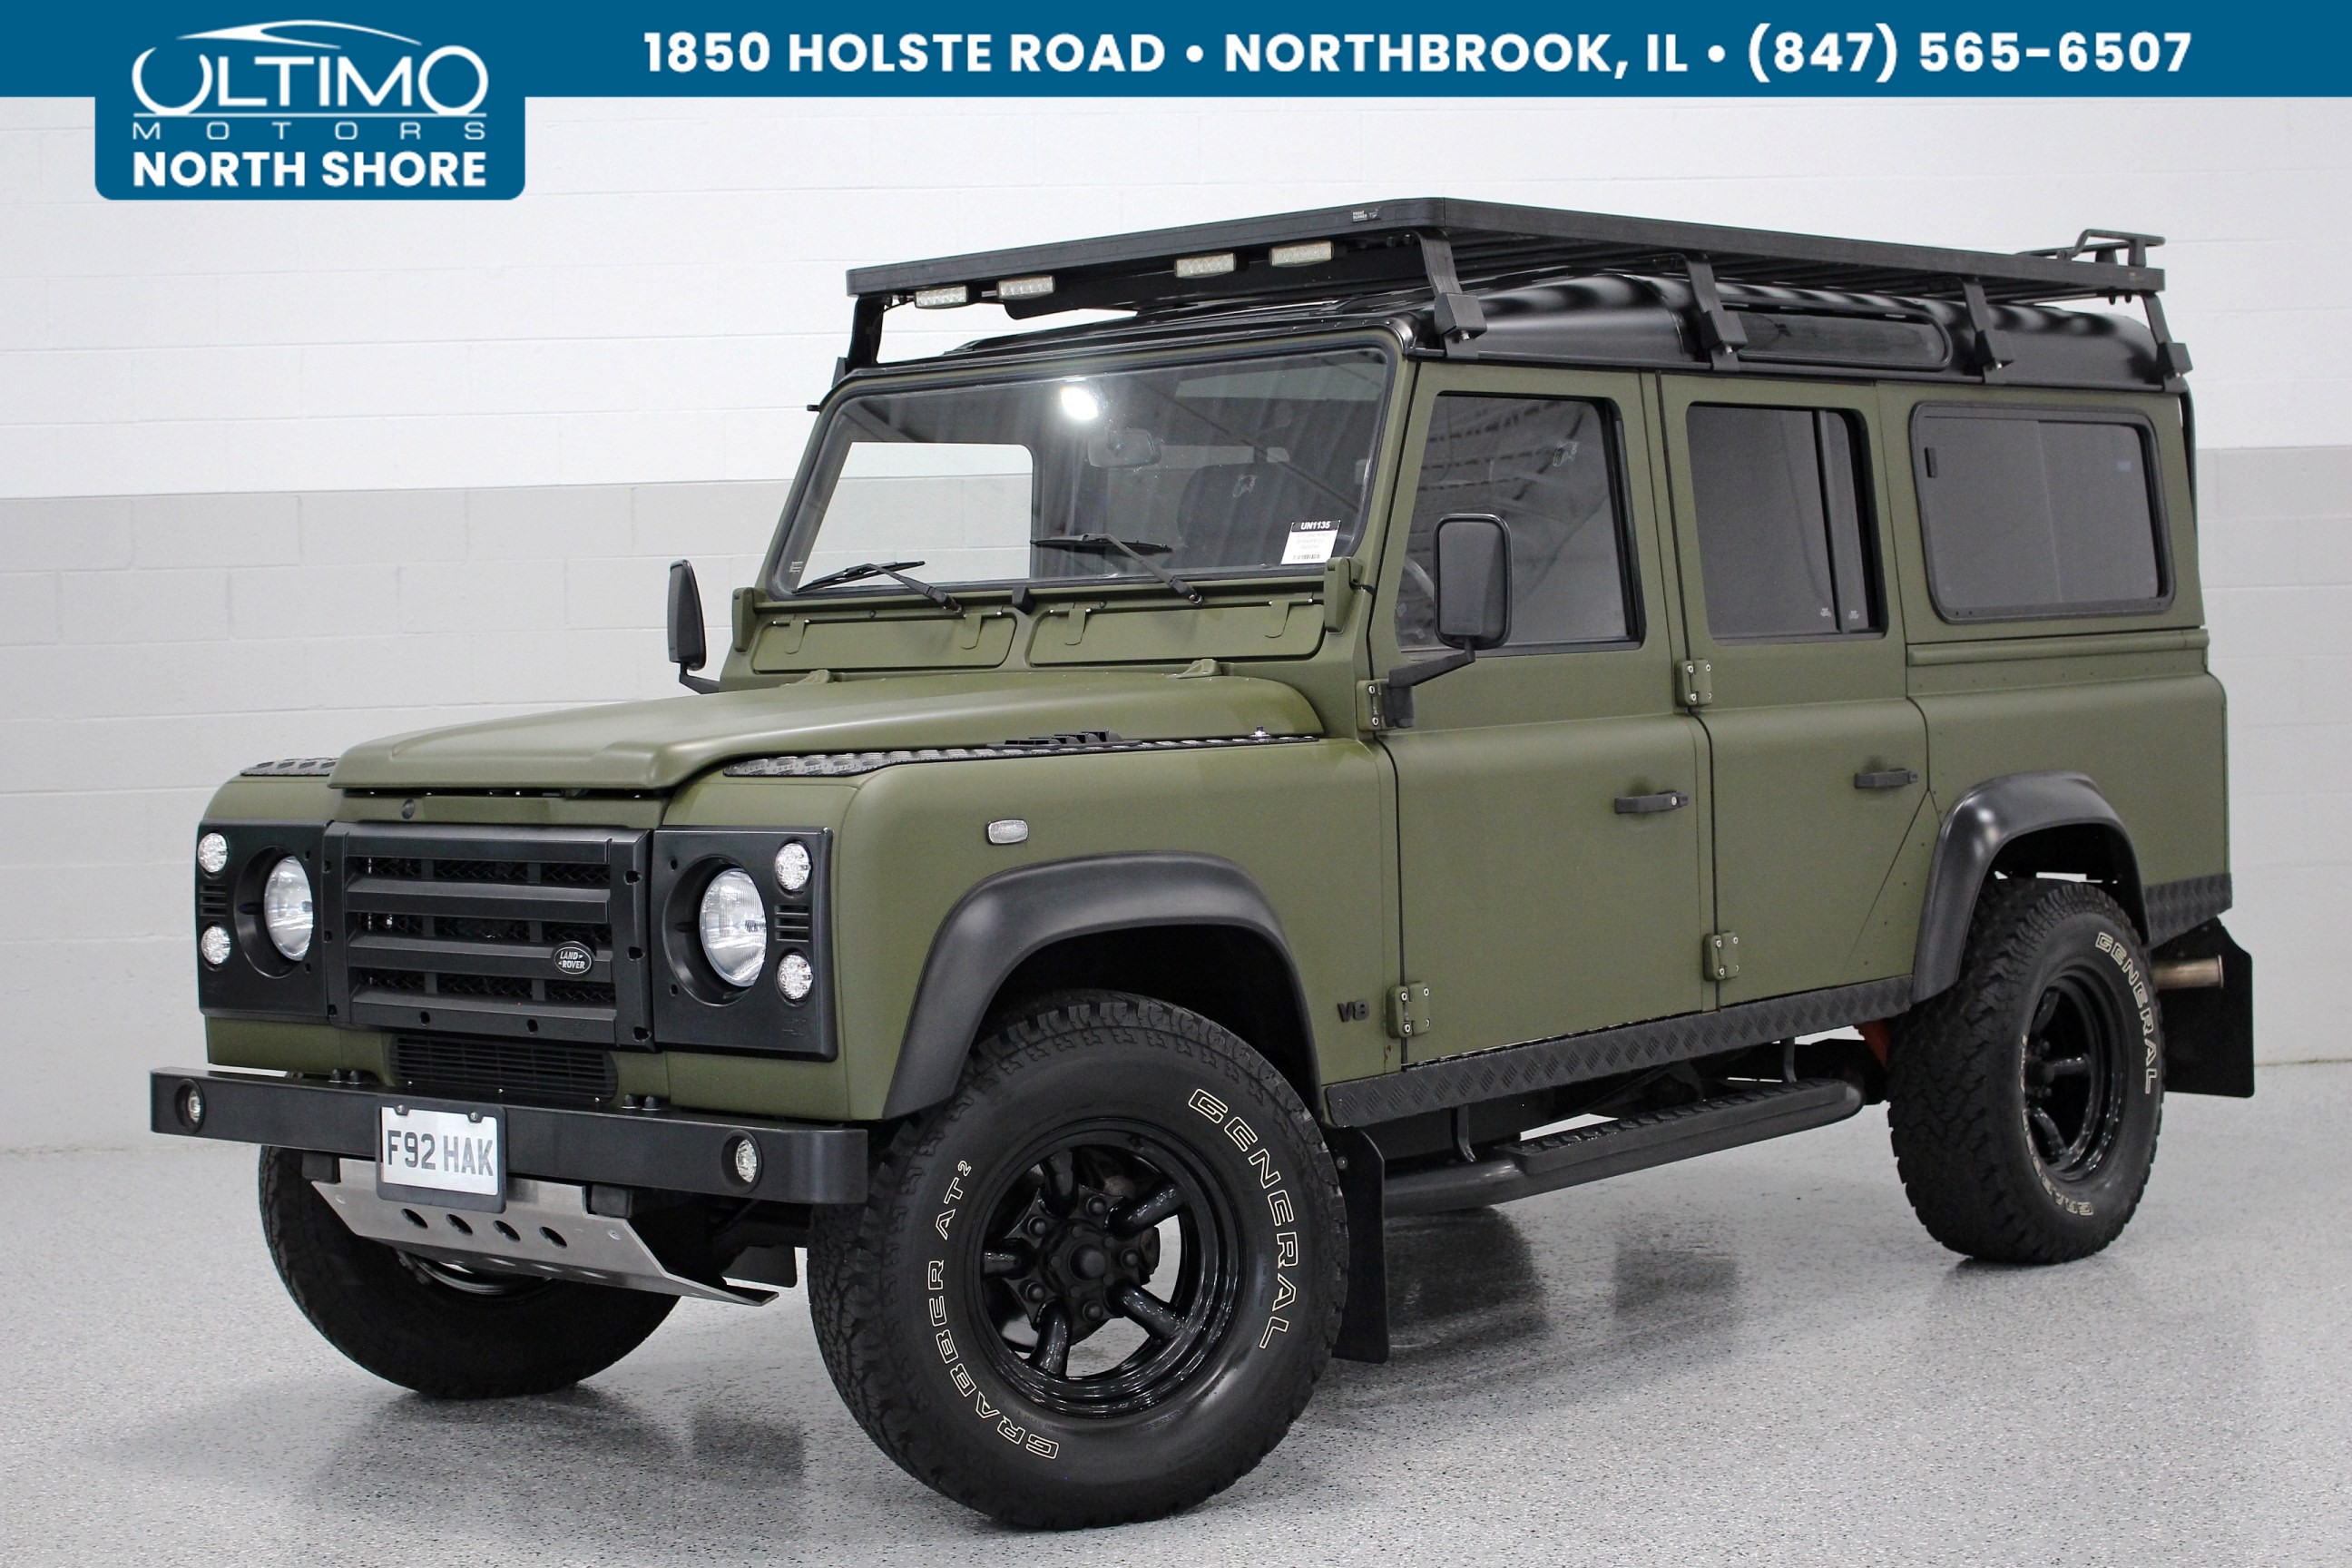 pre owned 2014 land rover defender 110 arkonik tomahawk 5 speed